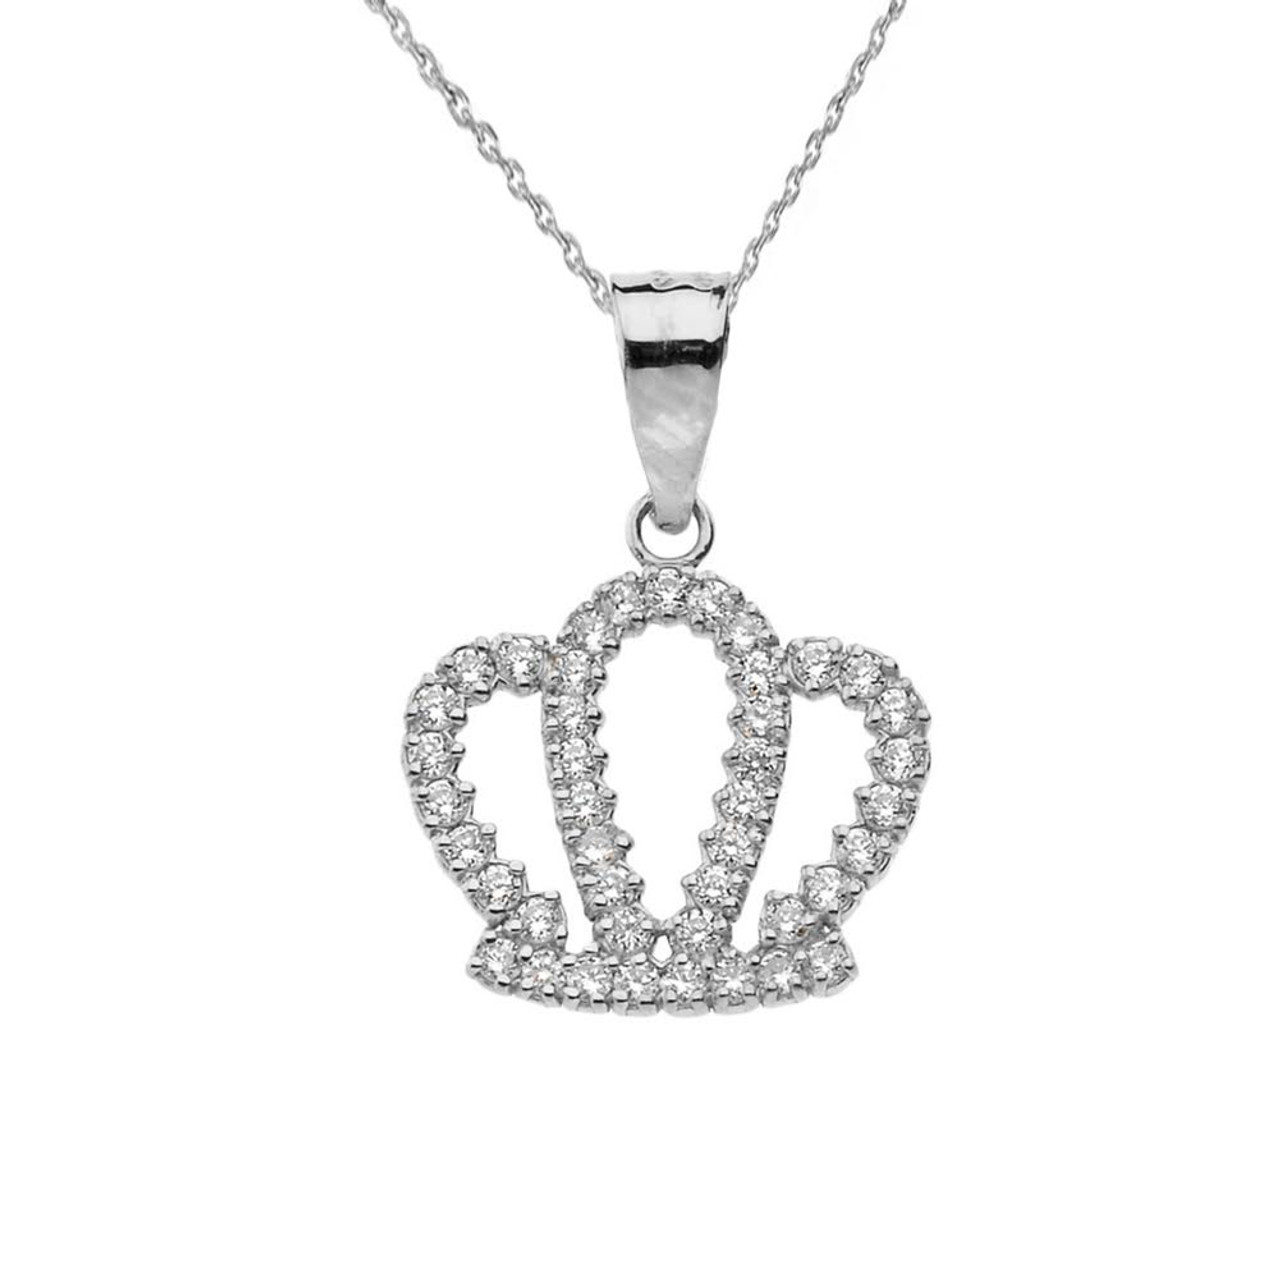 Solid Filigree Black and White CZ Cubic Zirconia Pendant Necklace Charm Chain